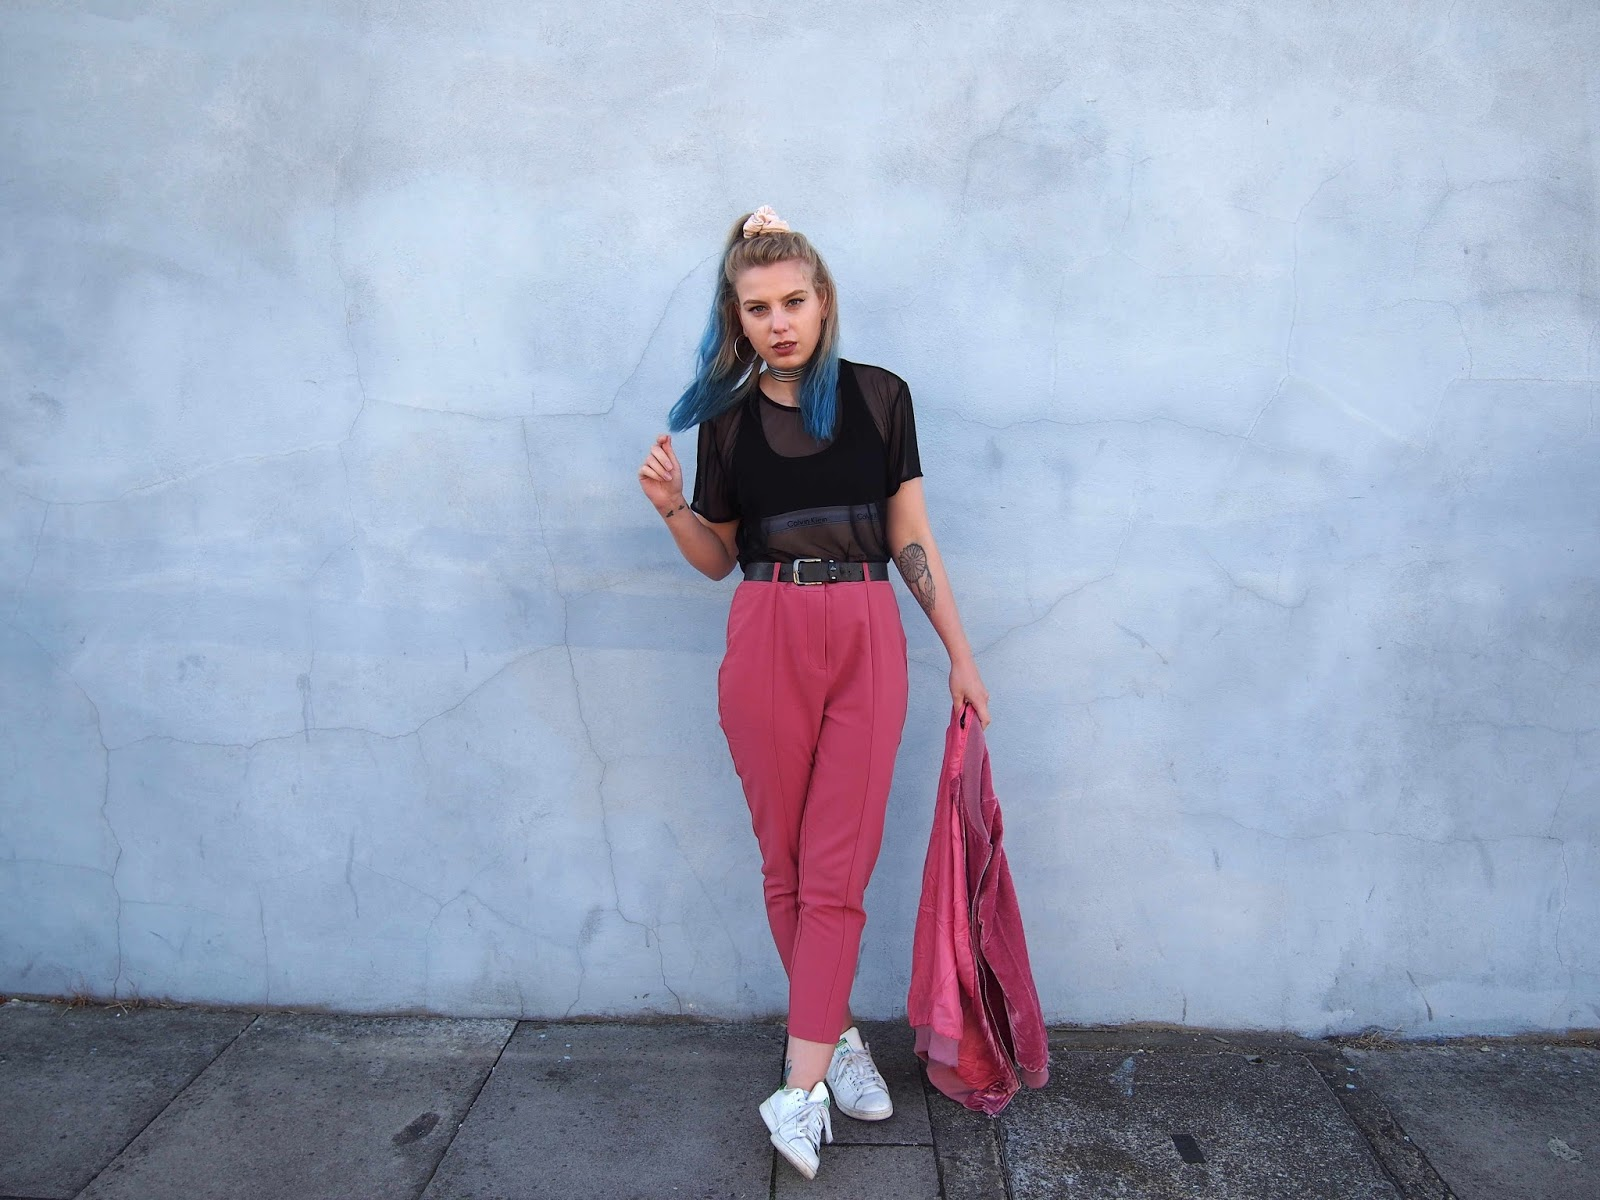 dusty pink cigarette trousers, mesh t-shirt, mesh top, ck bralette, velvet longline pink bomber jacket, stan smiths, street style, grunge 90's alternative outfit